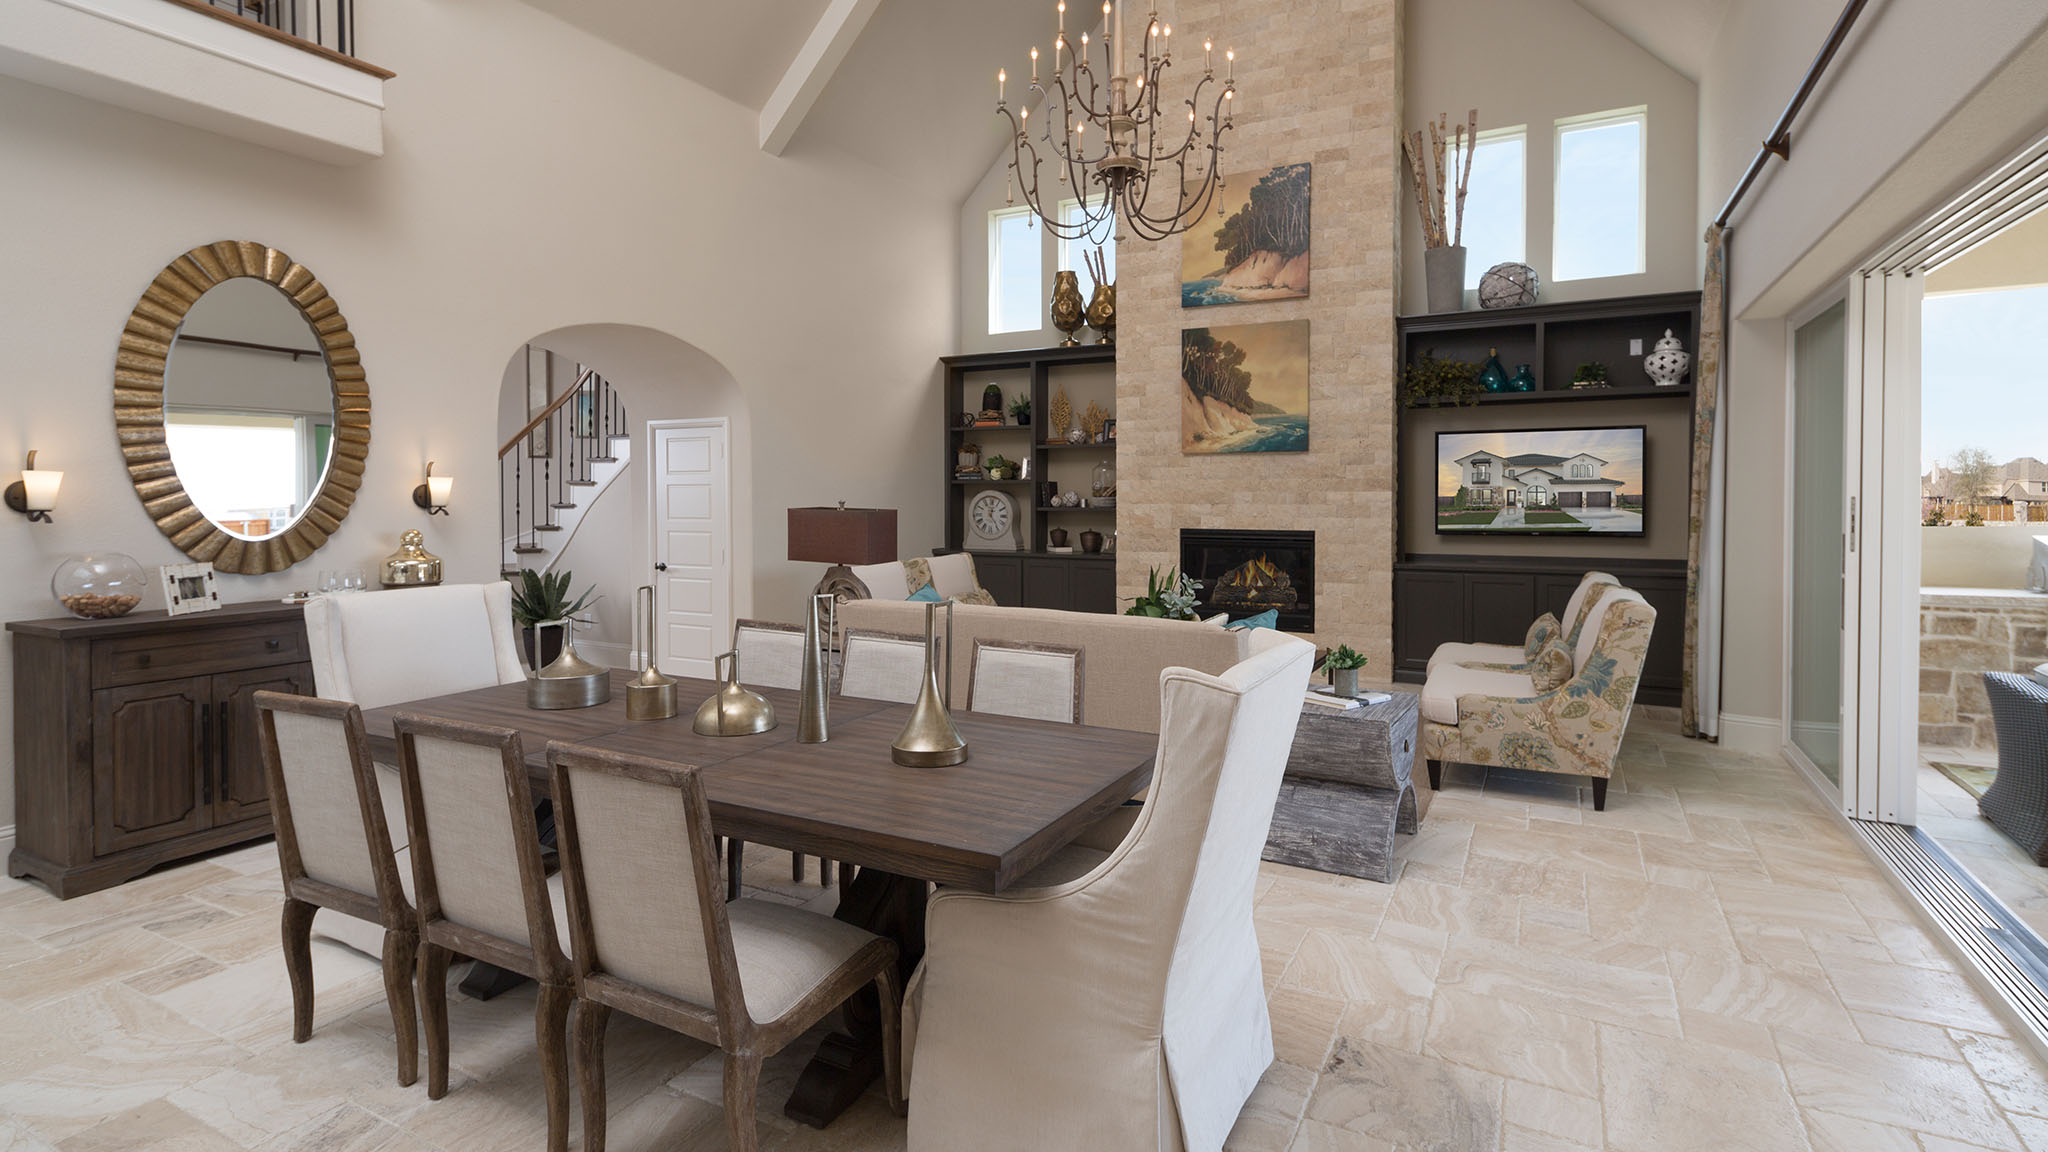 New Homes Frisco Available in Phillips Creek Ranch 65 – Britton Homes Floor Plans